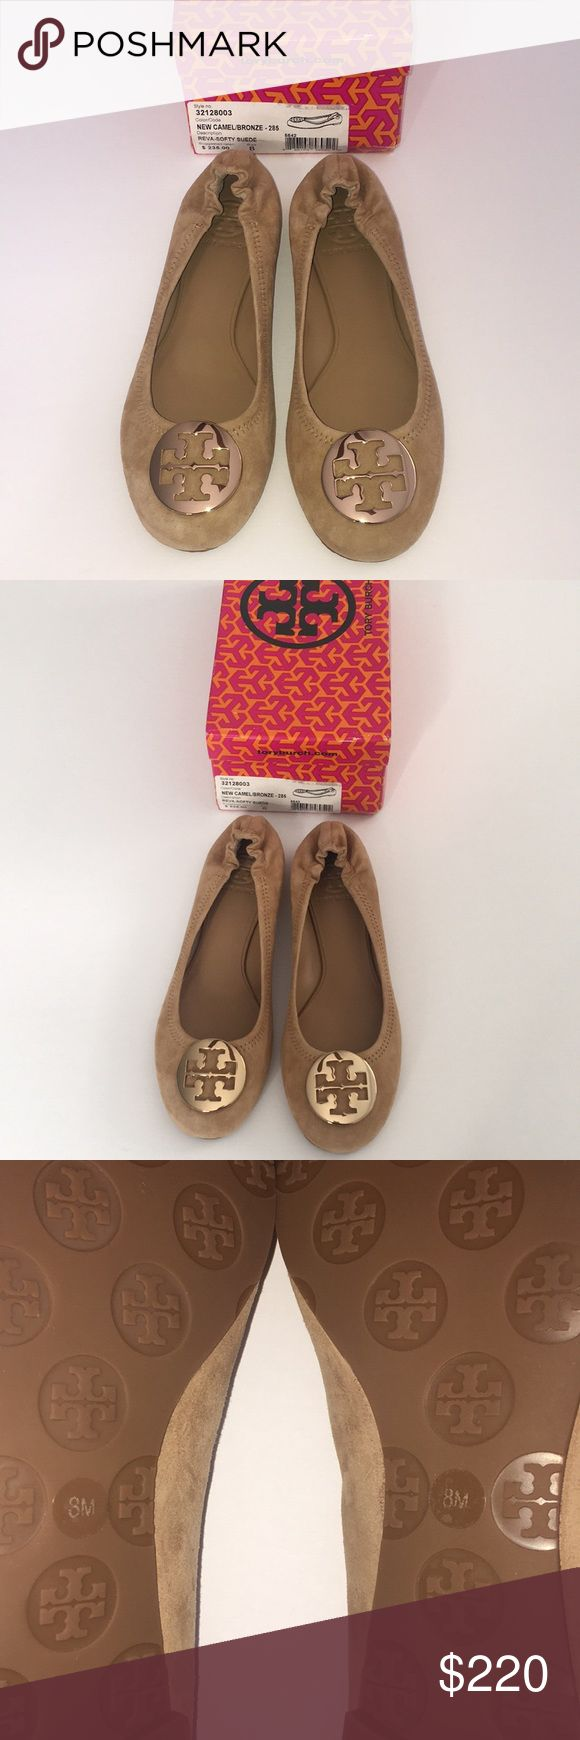 New Tory Burch Reva Ballet Flat Camel Suede Bronze New in box. Size 8.  Color: New camel/ bronze buckle  Reva Flat Ballet Slippers in Softy Suede.  Style # 32128003  Signature logo medallions accent the rounded toe of these Tory Burch Ballerina flats, crafted in lightly brushed suede. Leather upper and rubber sole. Elasticized back.   Feel free to bundle and make an offer! Tory Burch Shoes Flats & Loafers